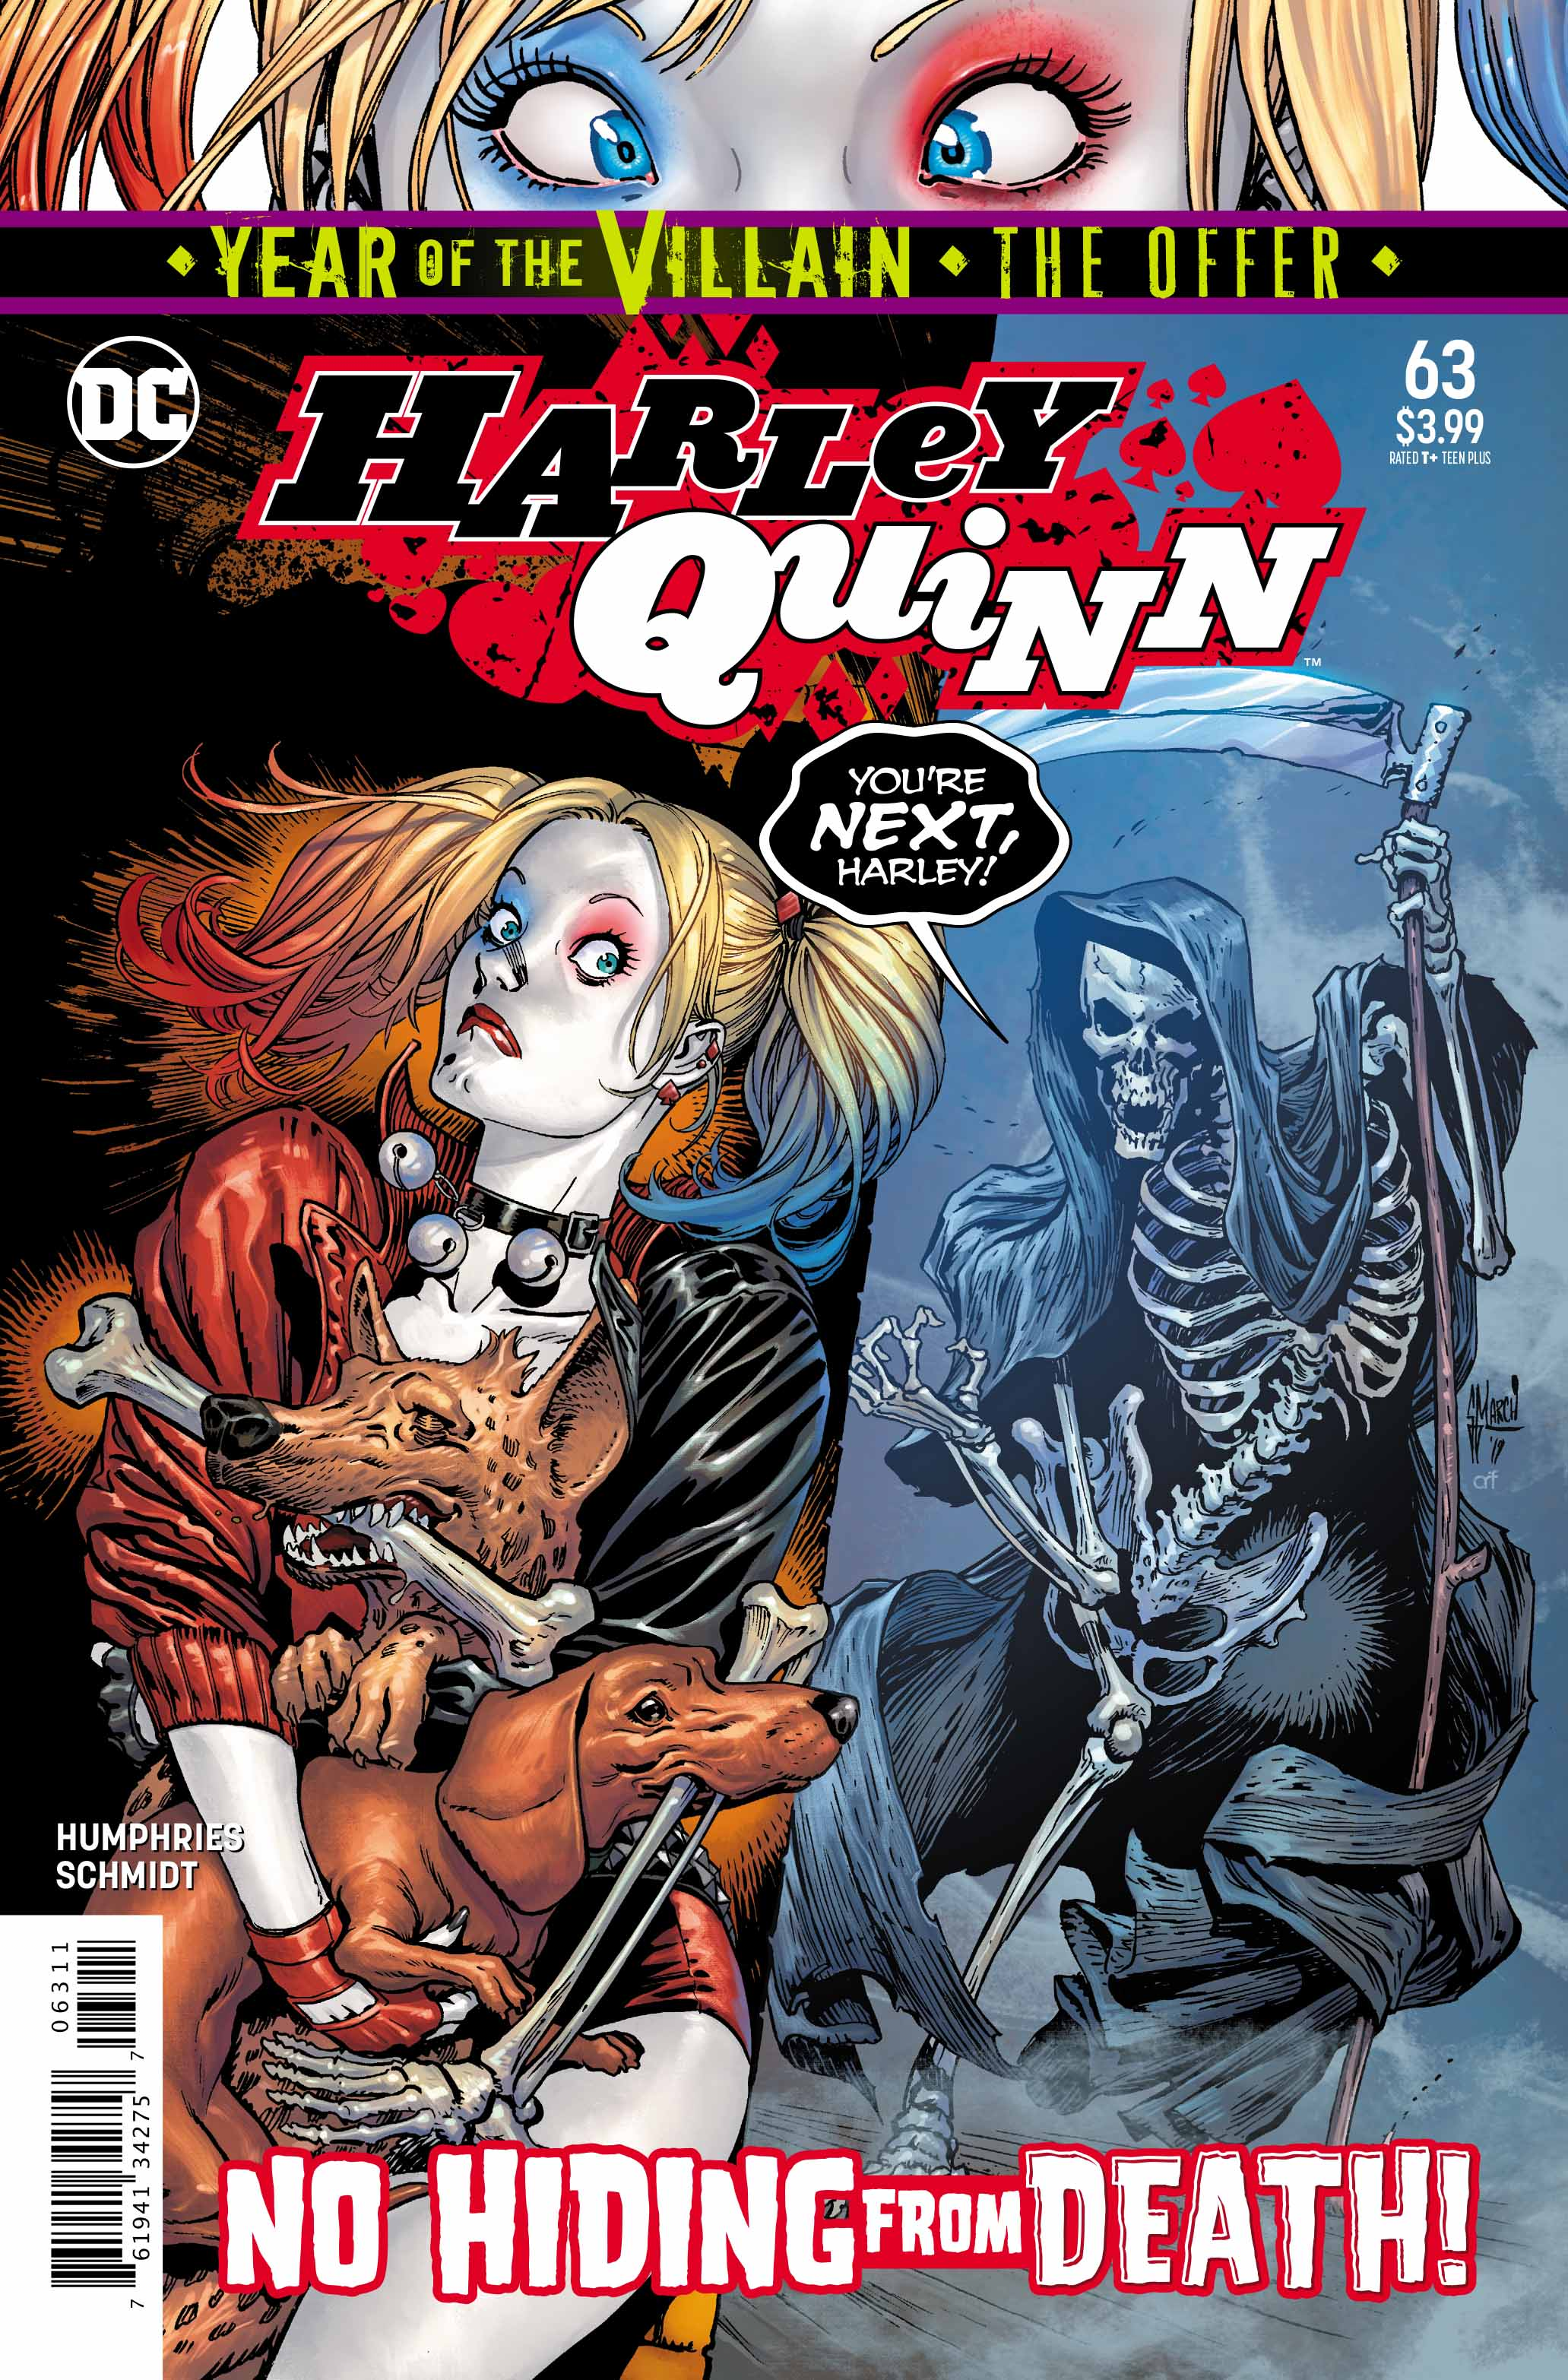 Harley 63: Sadness. Laughing. Tears. Oh How Harley!